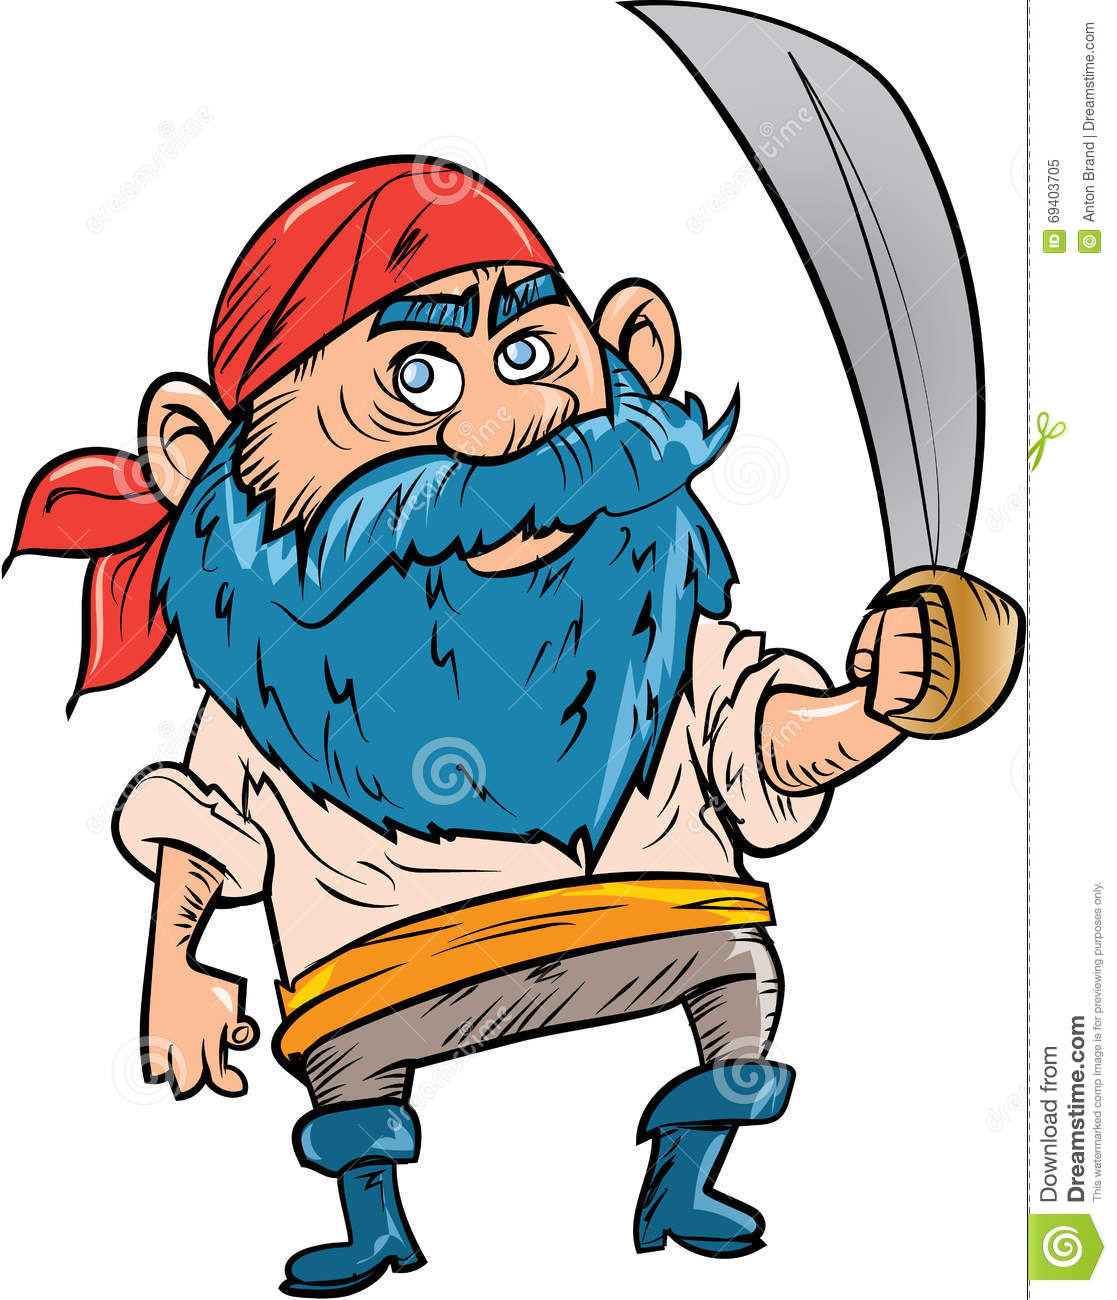 Pirate De Bande Dessin 233 E Avec La Barbe Bleue Illustration